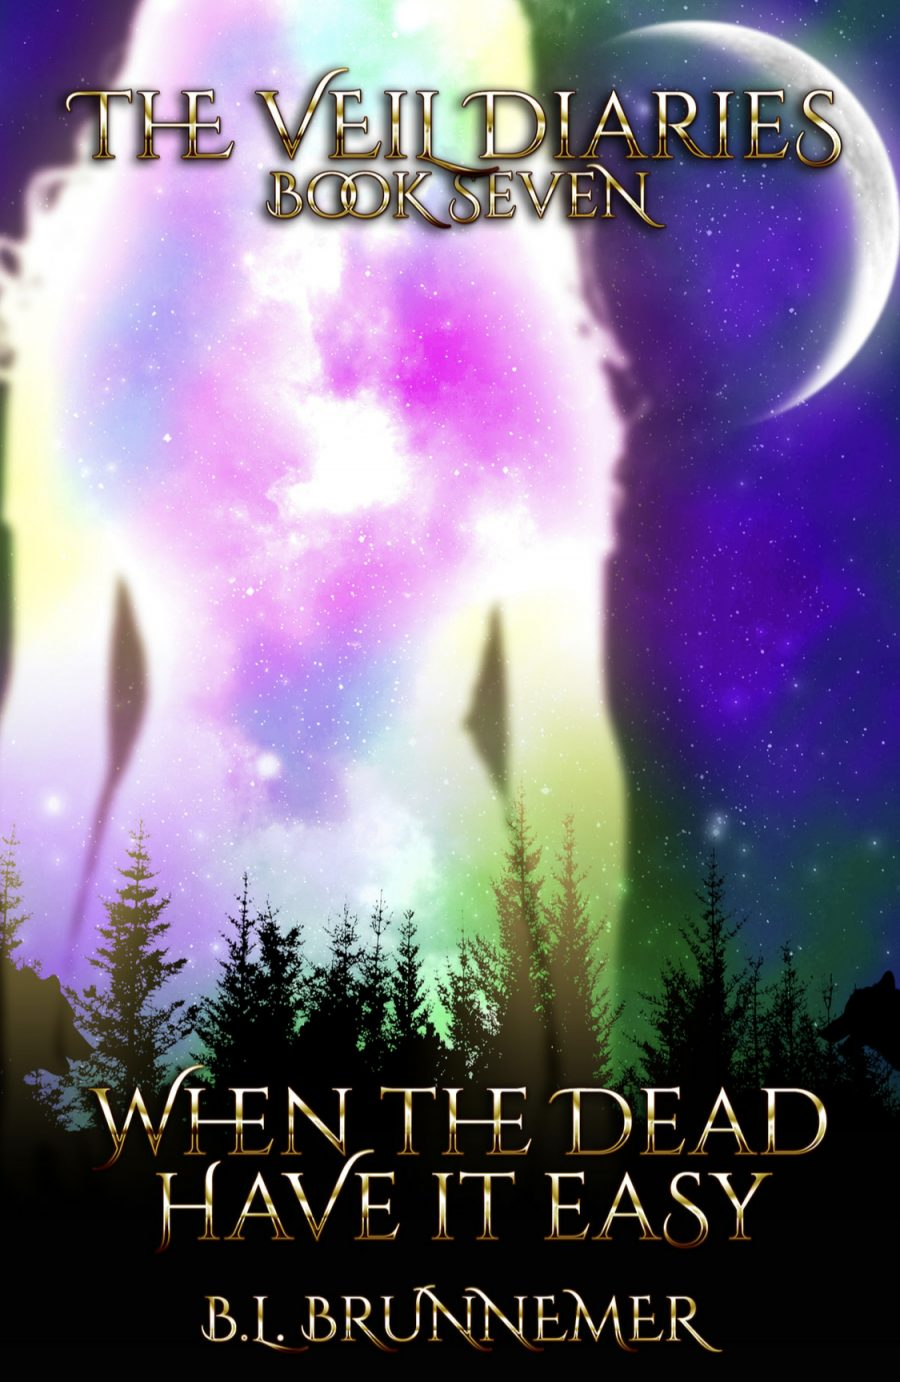 When The Dead Have It Easy by B.L. Brunnemer – A Book Review